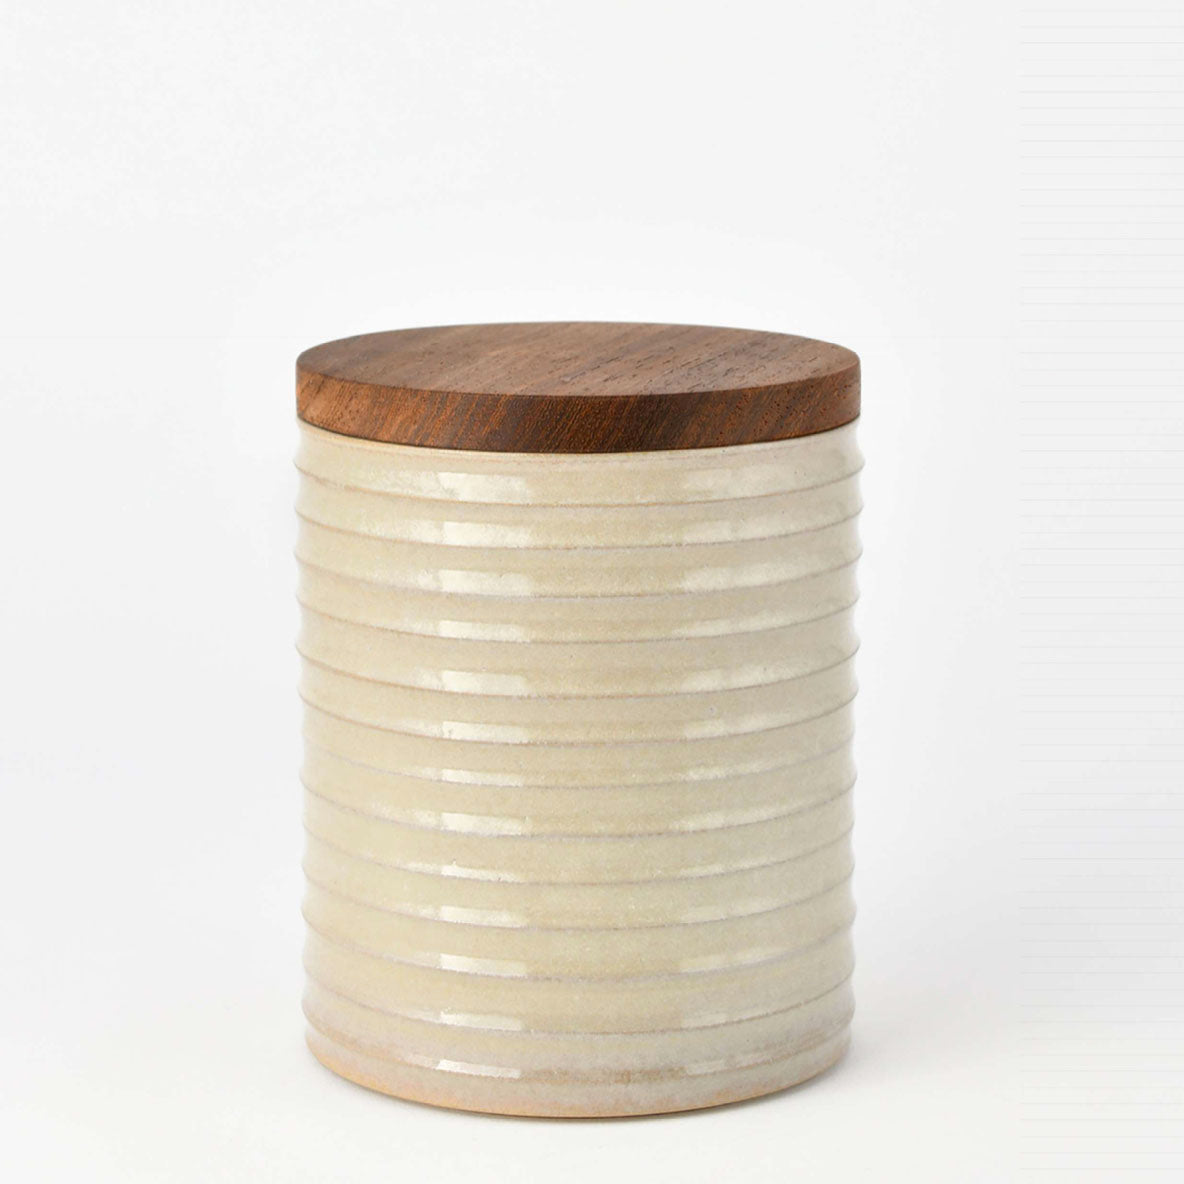 DRY GOODS JAR IVORY by Vorster & Braye at SARZA. ceramics, dry goods jars, homeware, Vorster&Braye